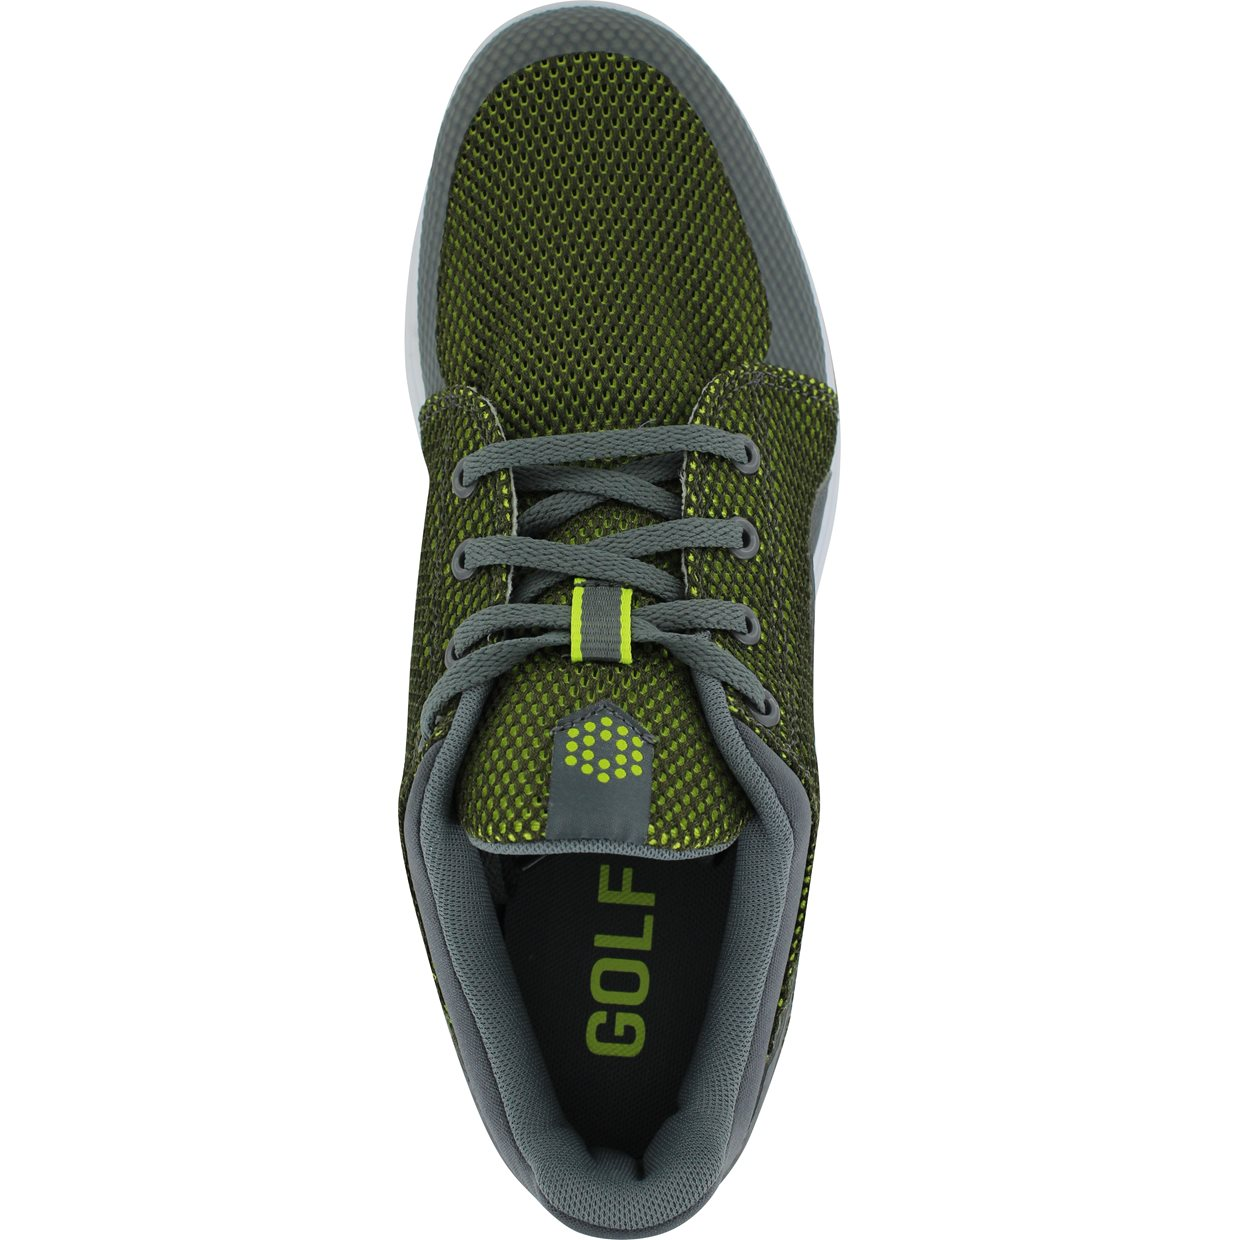 a8e77add9f7710 Puma Grip Sport Tech Spikeless Shoes. Drag 360 Left or Right to View.  Alternate Product Image View 1 Alternate Product Image View 2 Alternate  Product Image ...